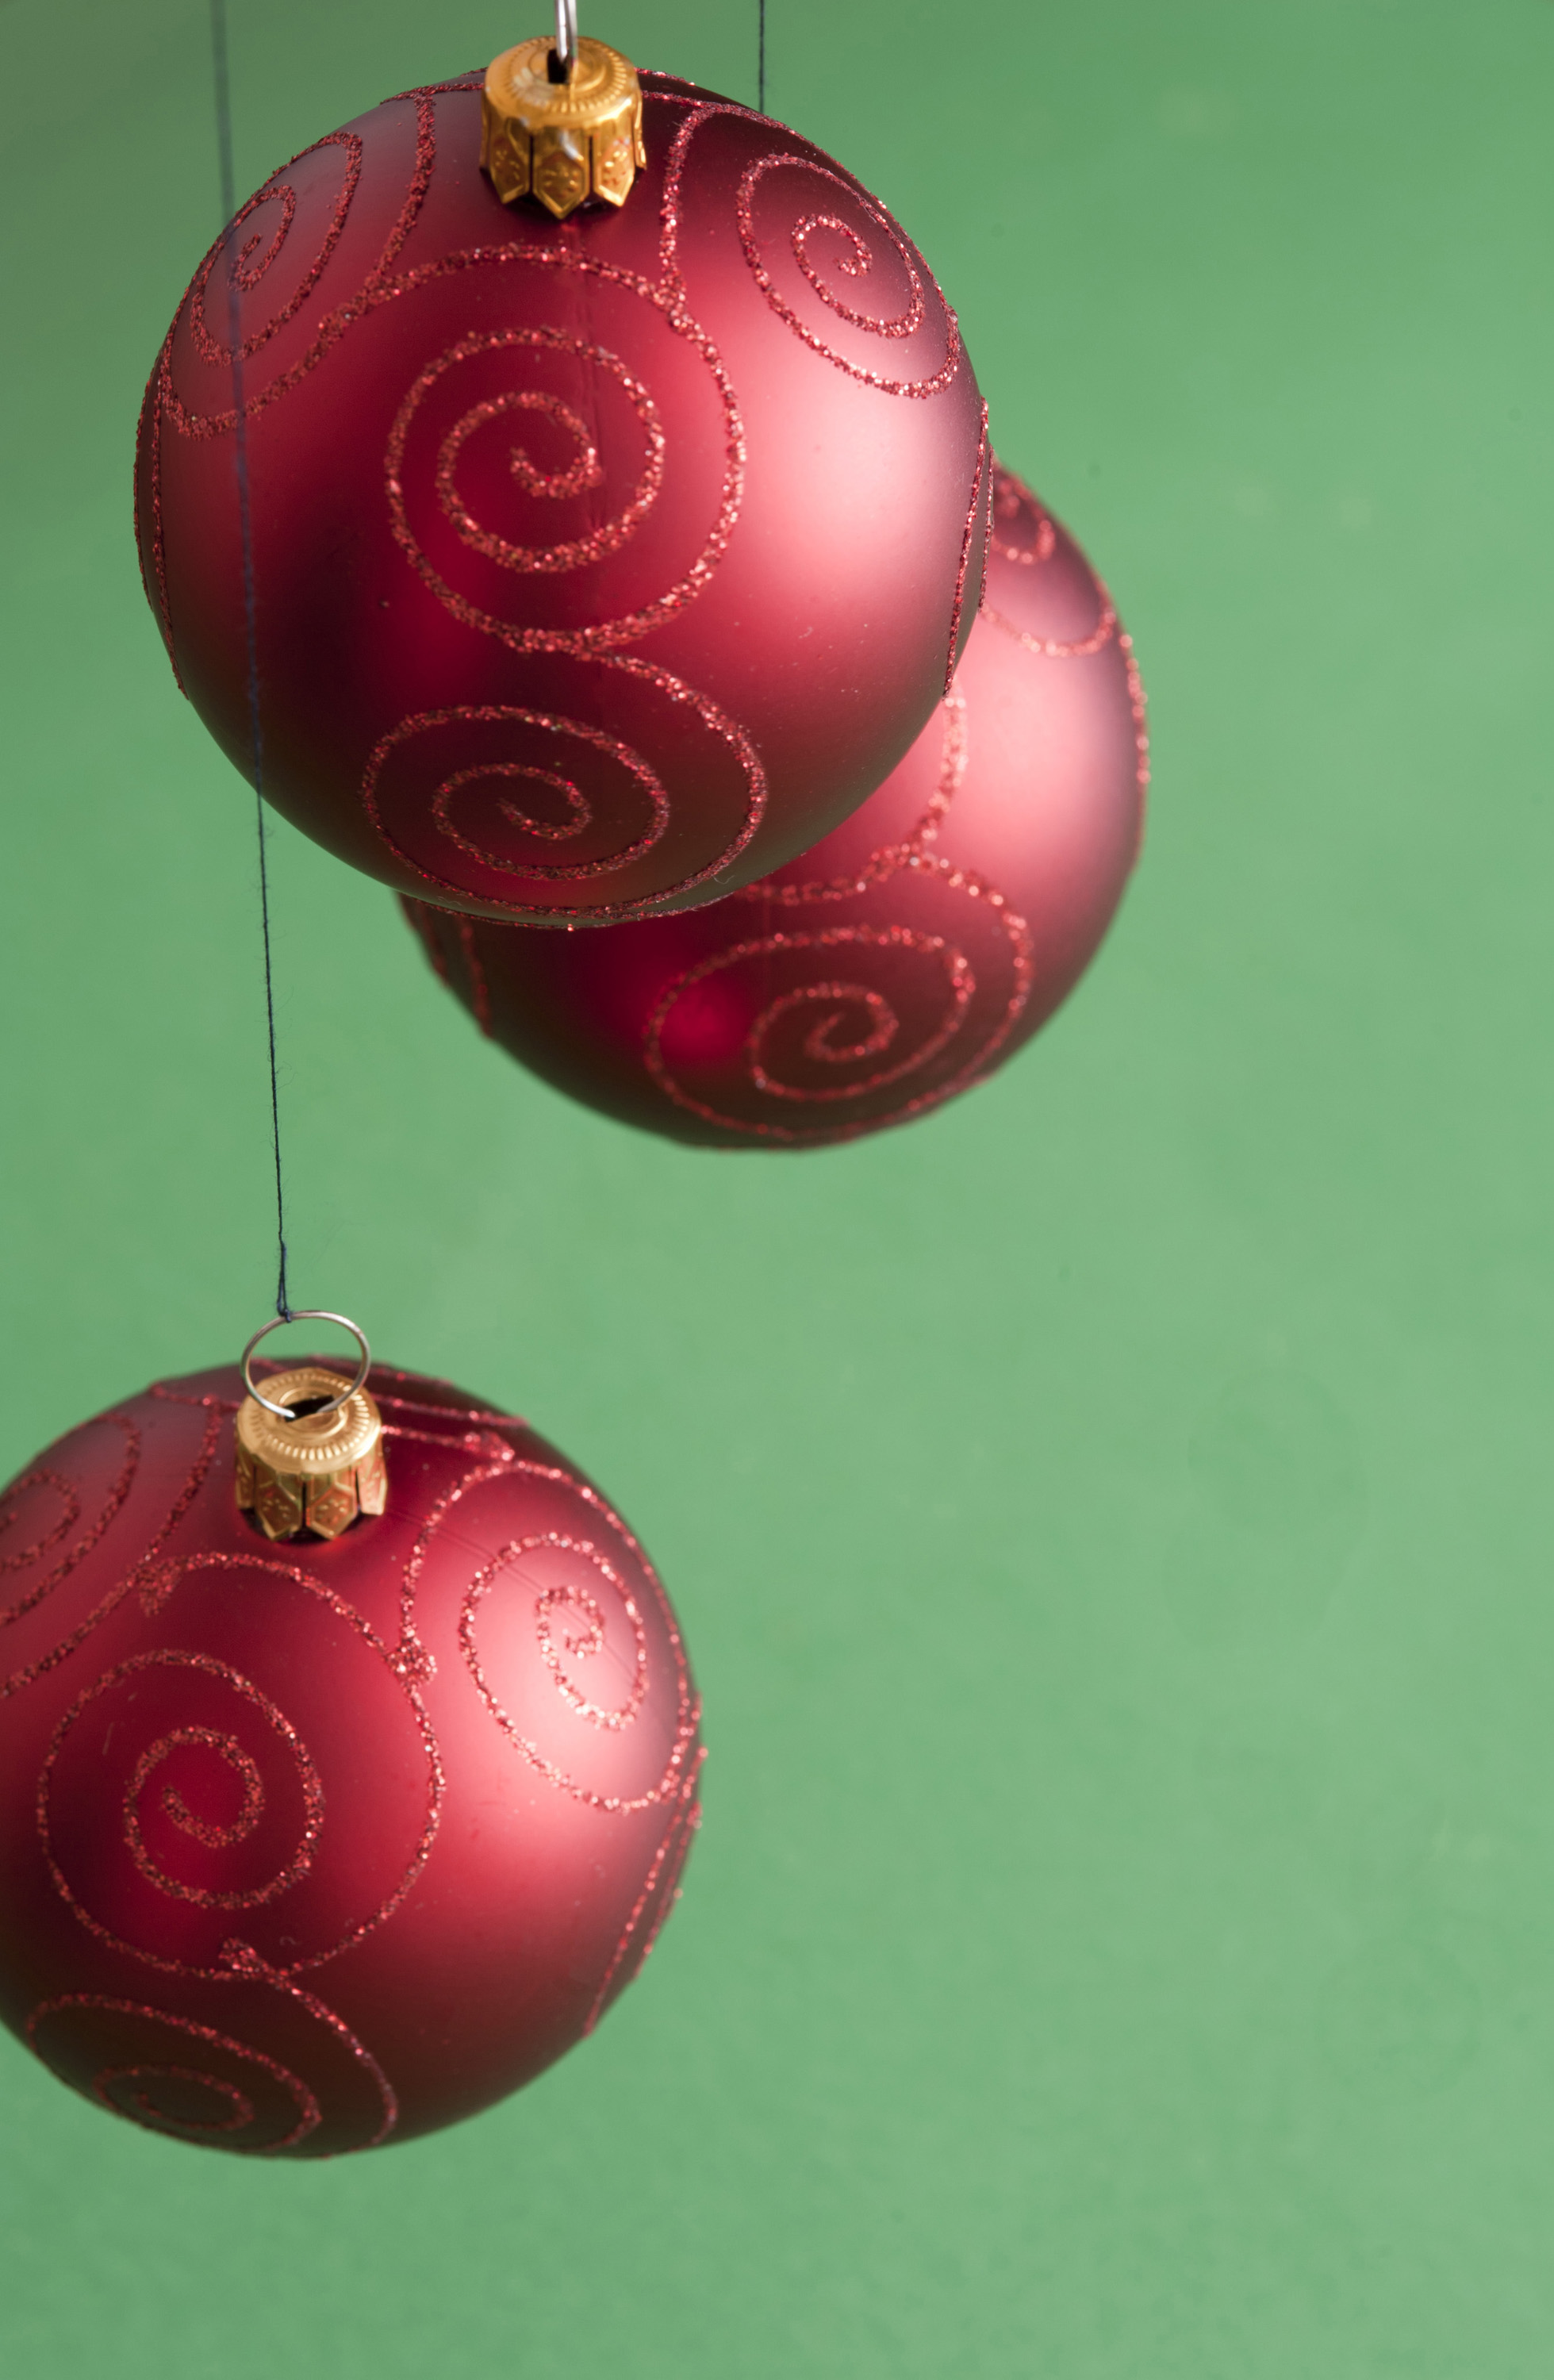 Three Christmas balls hanging on green background